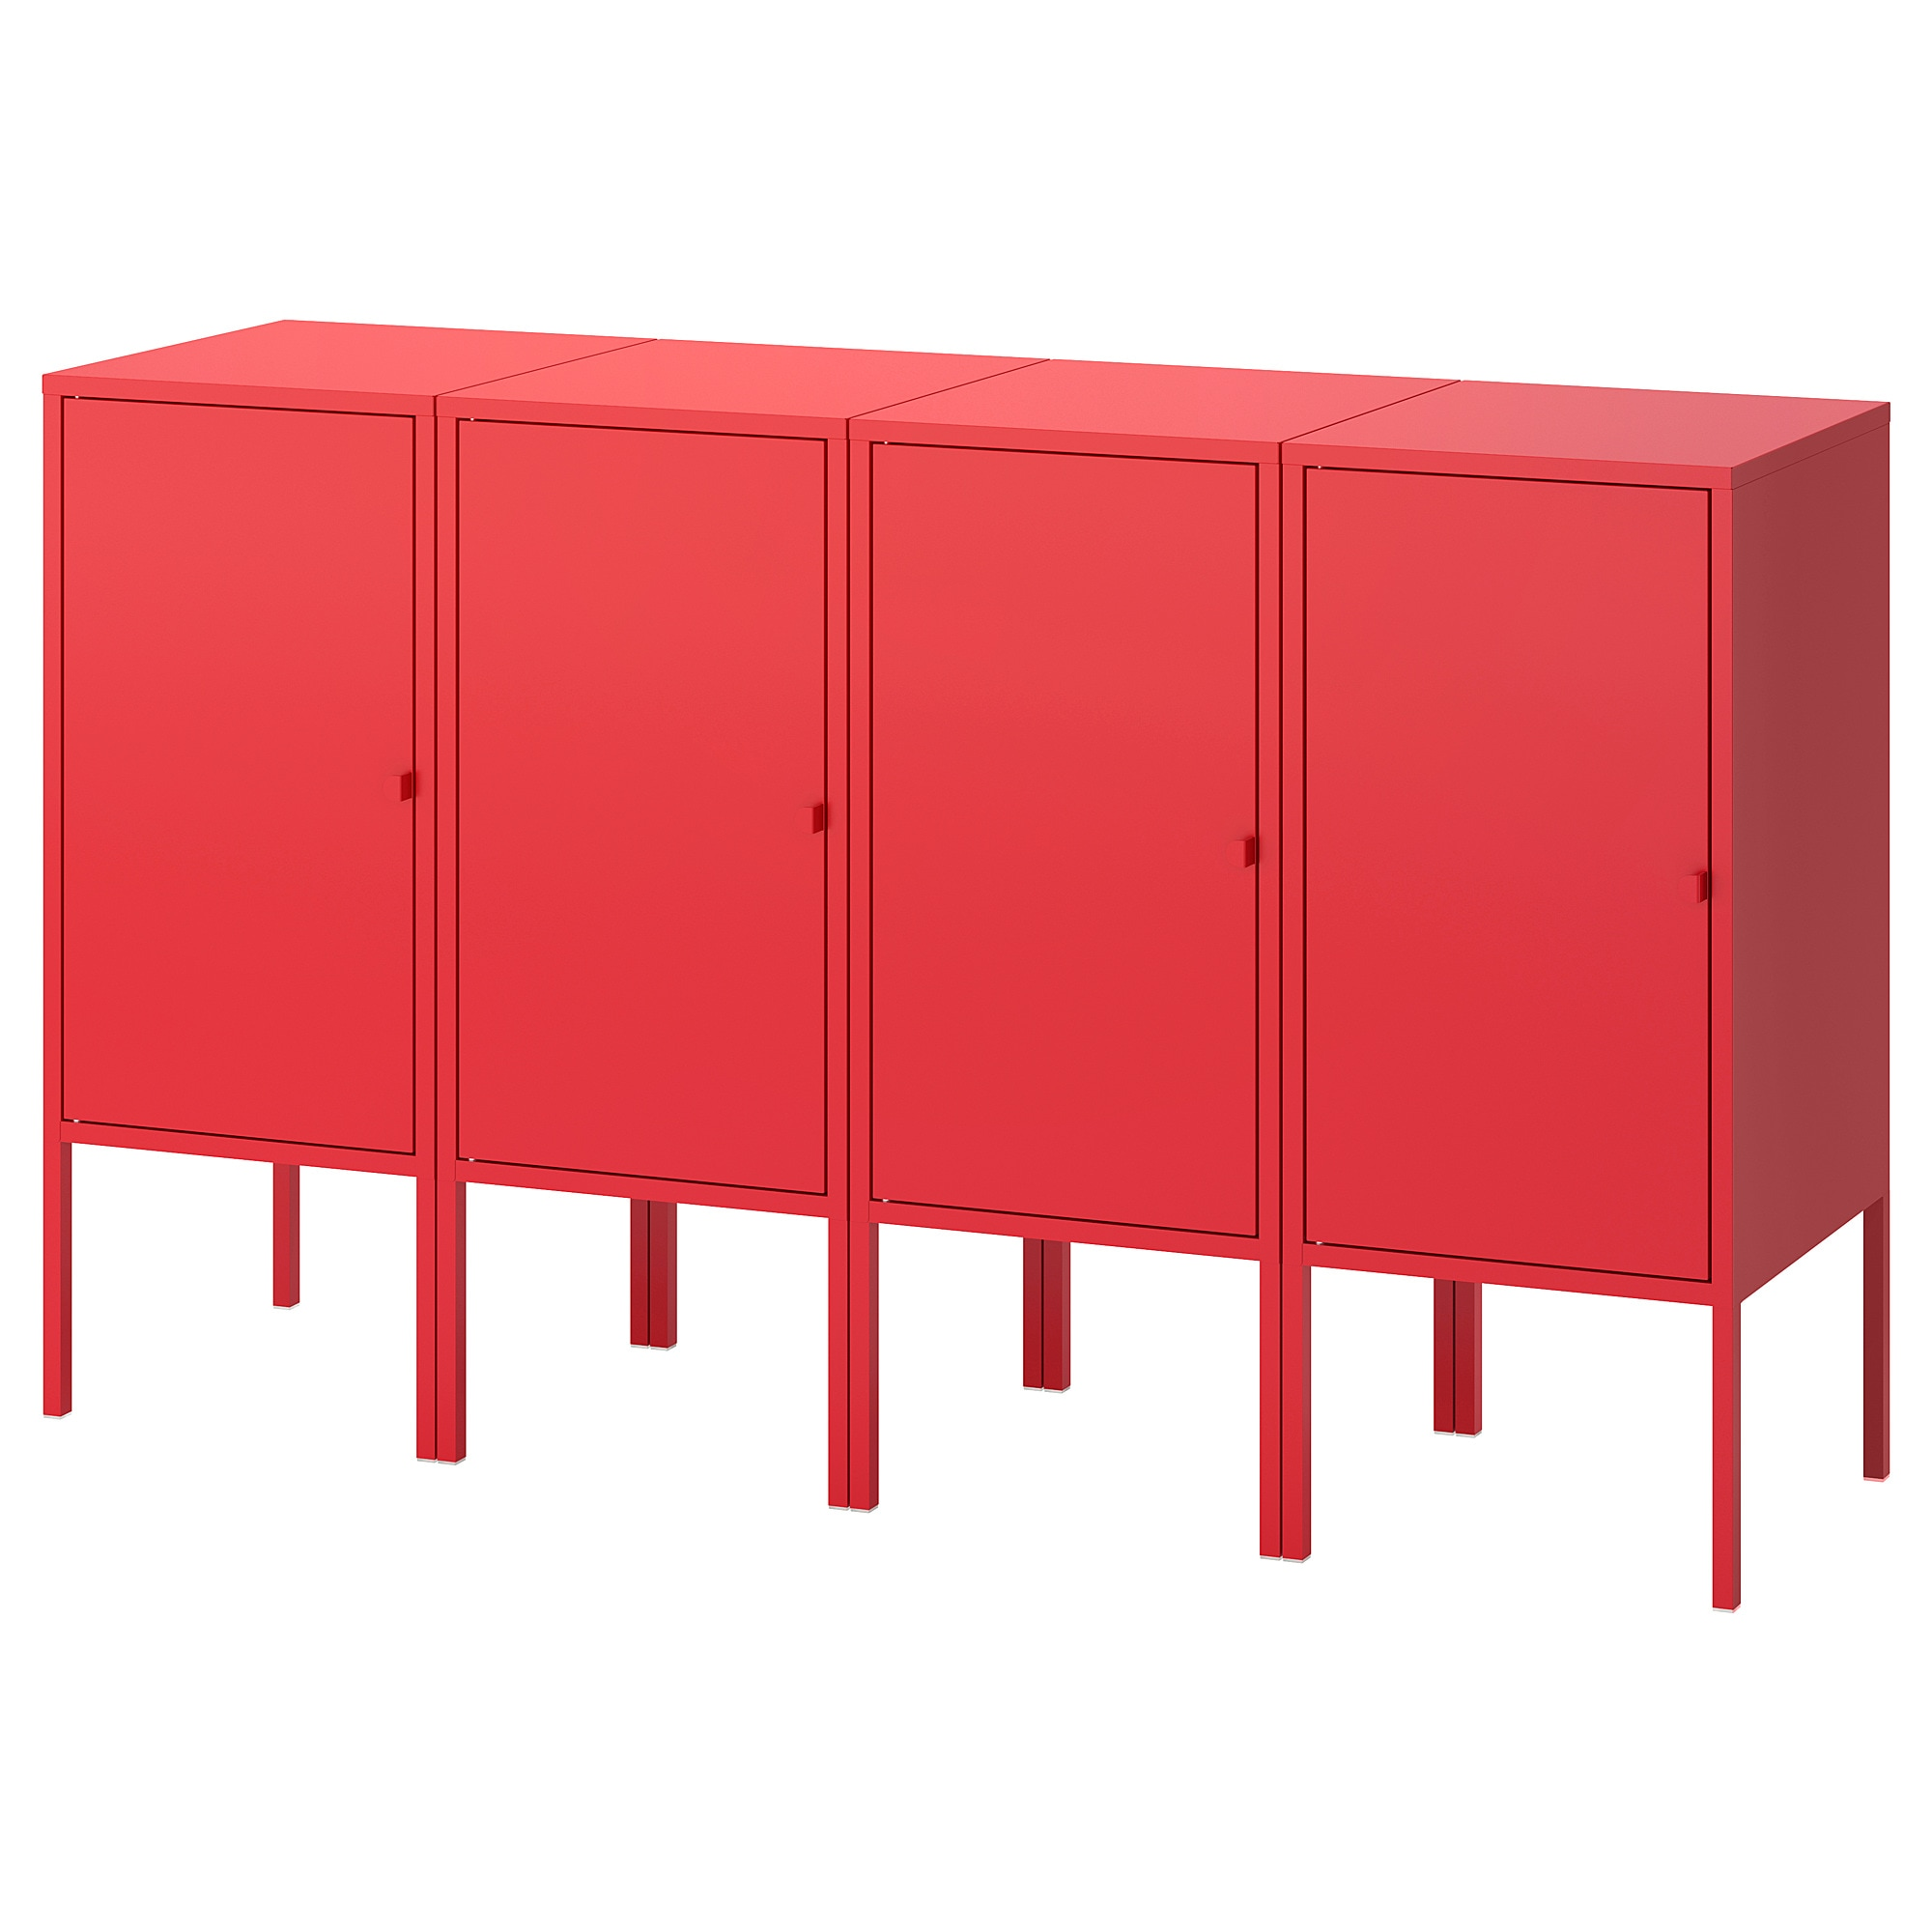 Merveilleux LIXHULT Storage Combination   Red   IKEA